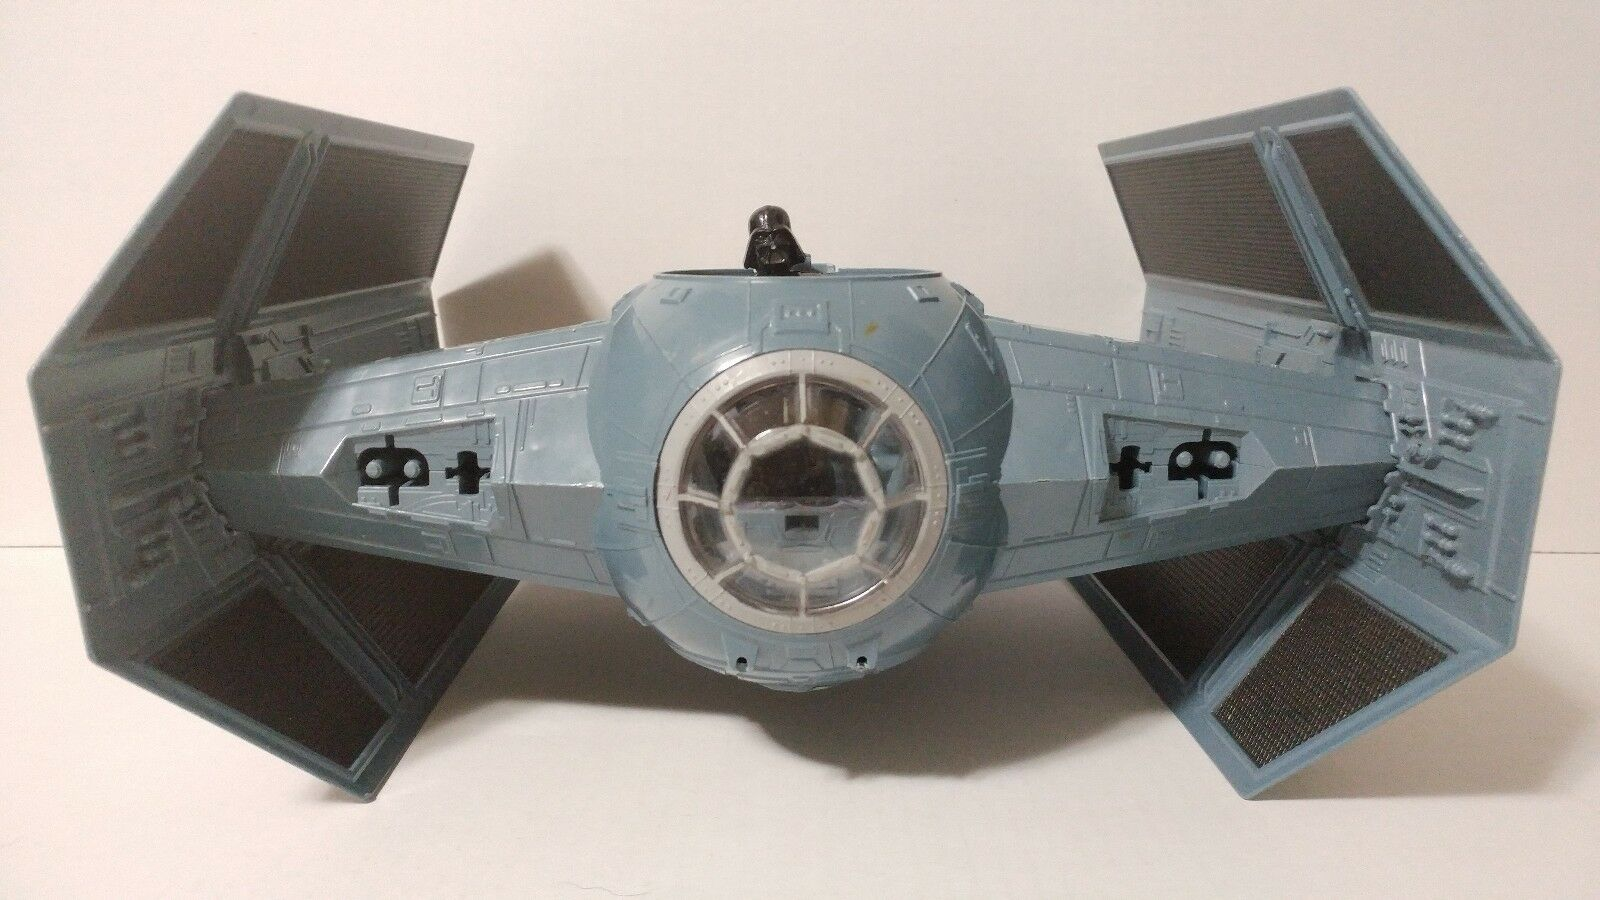 KENNER HASBRO LUCASFILM LTD 1997 Star Wars Darth Vader Tie Fighter Ship